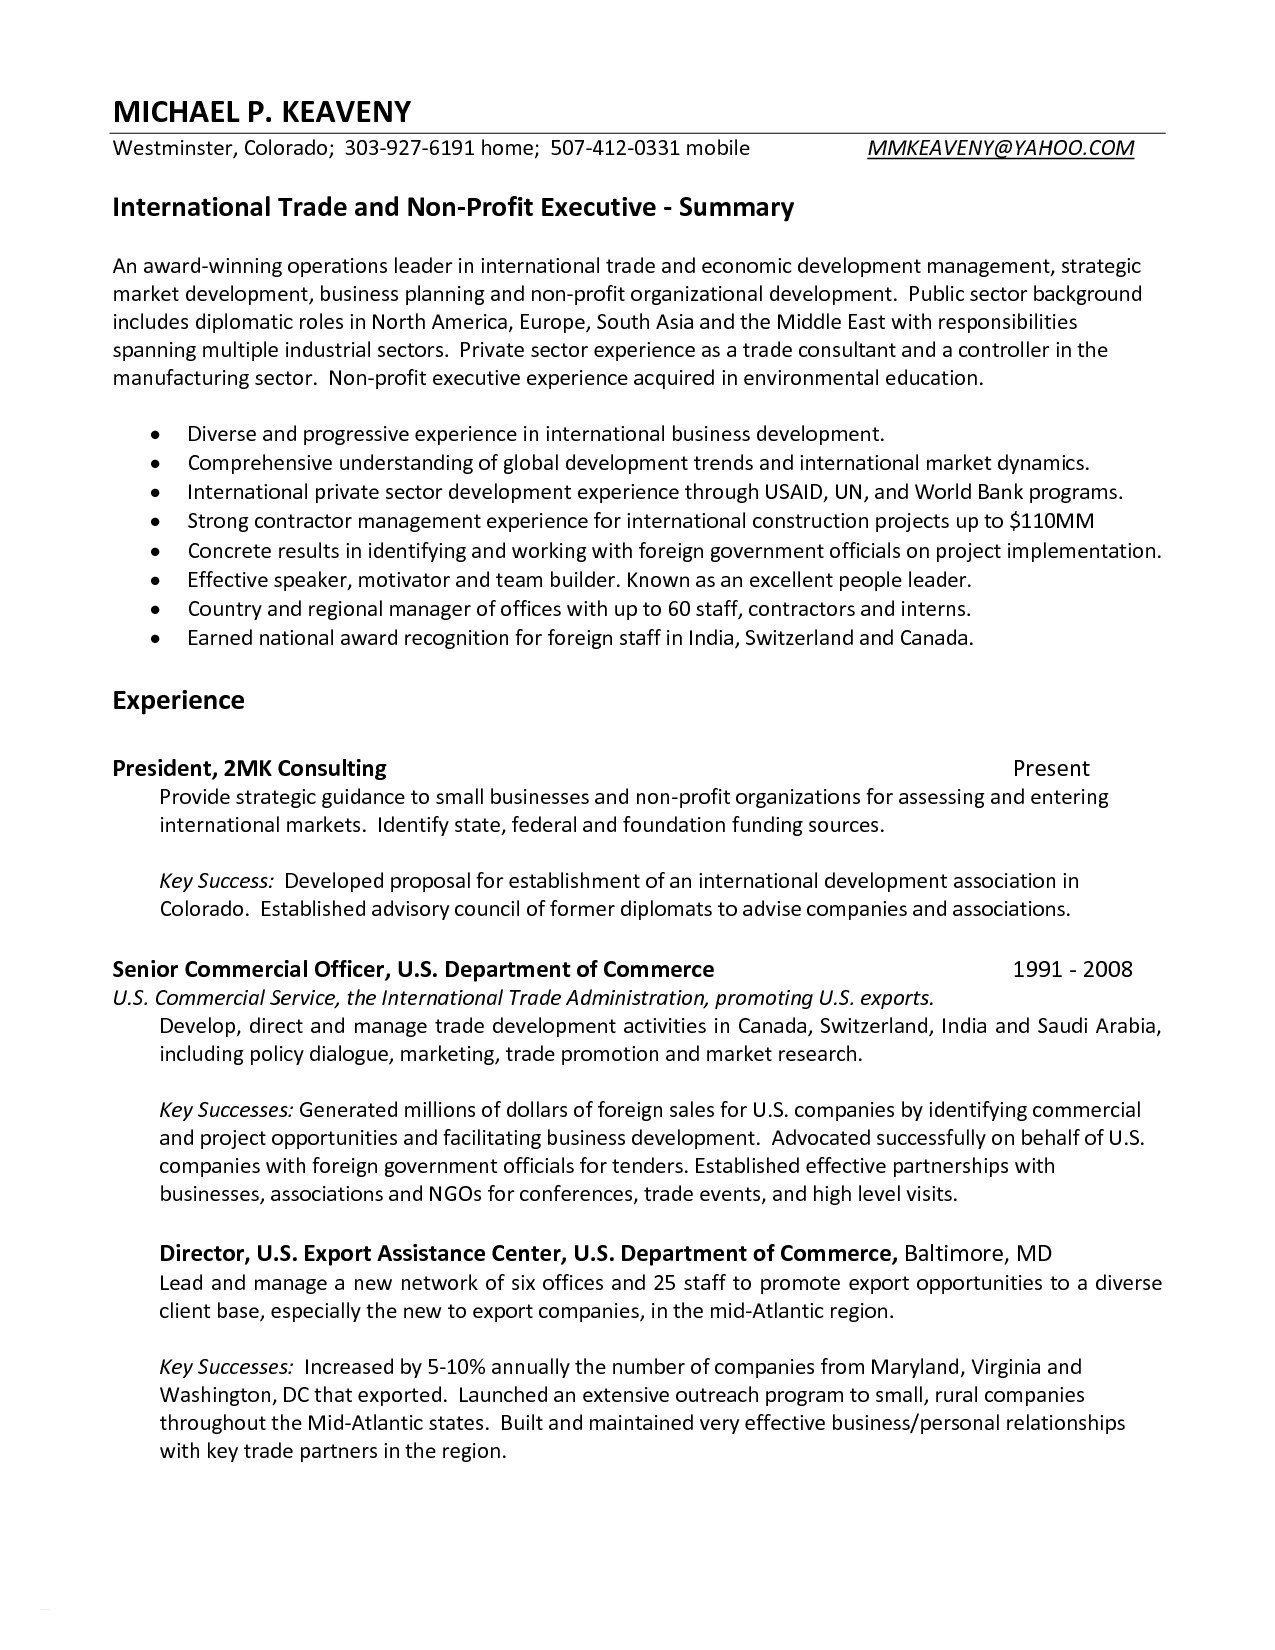 Caregiver Resume Summary - Best Resume Template for Caregiver Position